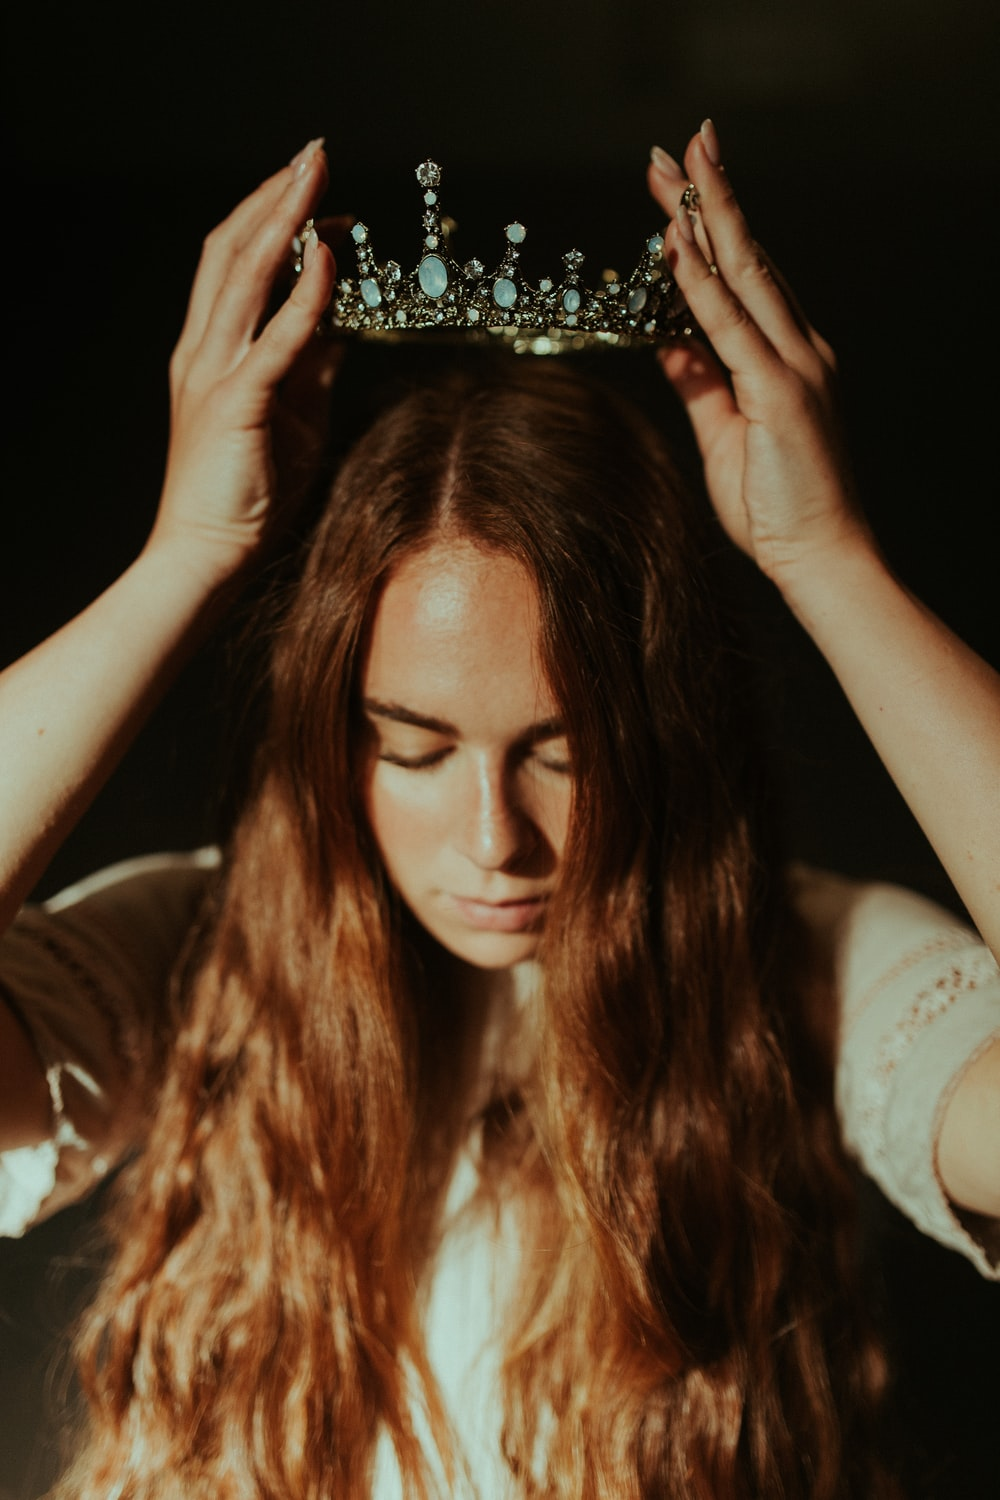 woman putting silver-colored tiara on her head